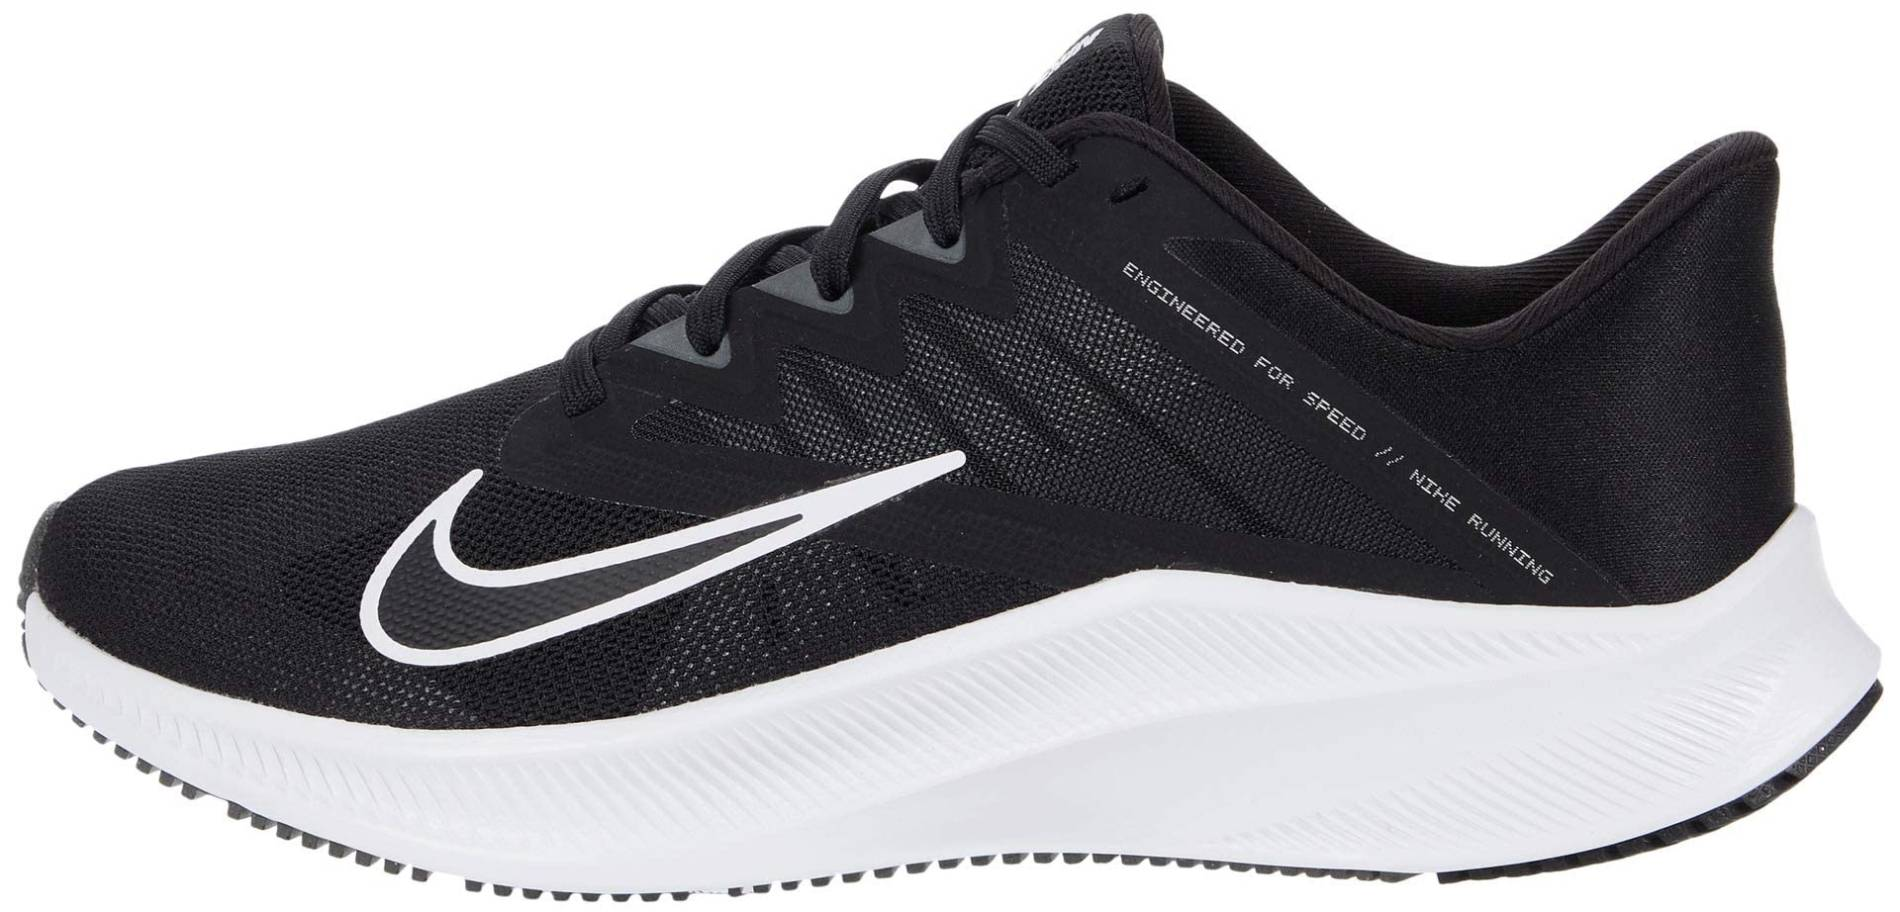 Only £54 + Review of Nike Quest 3